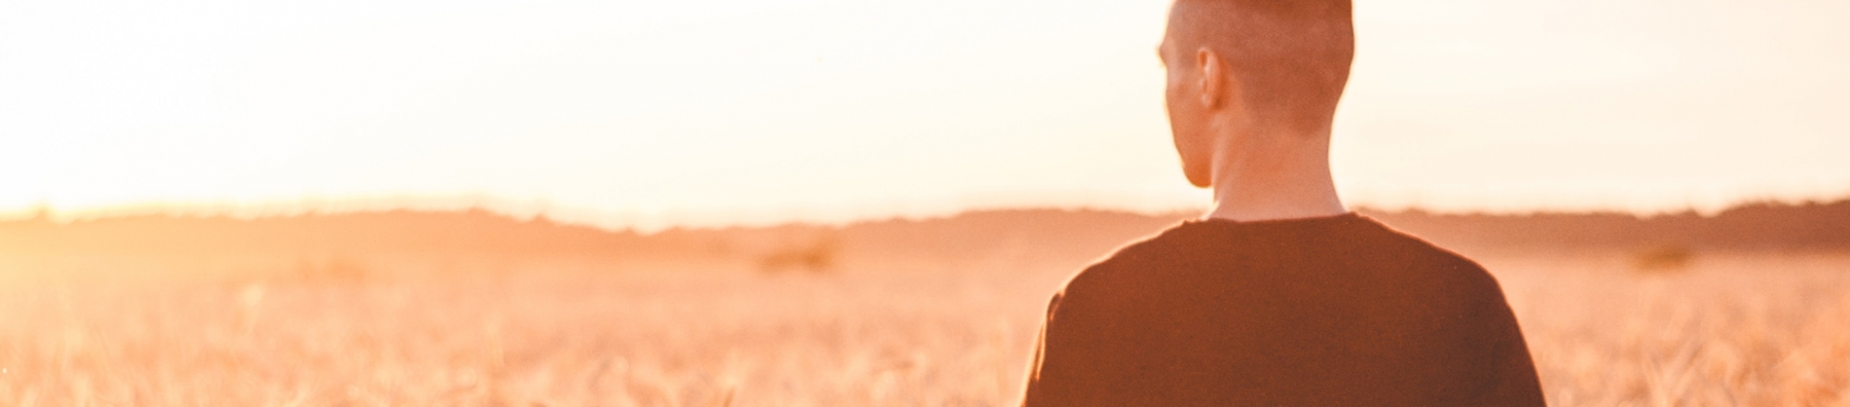 A guy stood in a field with the sun shining on him